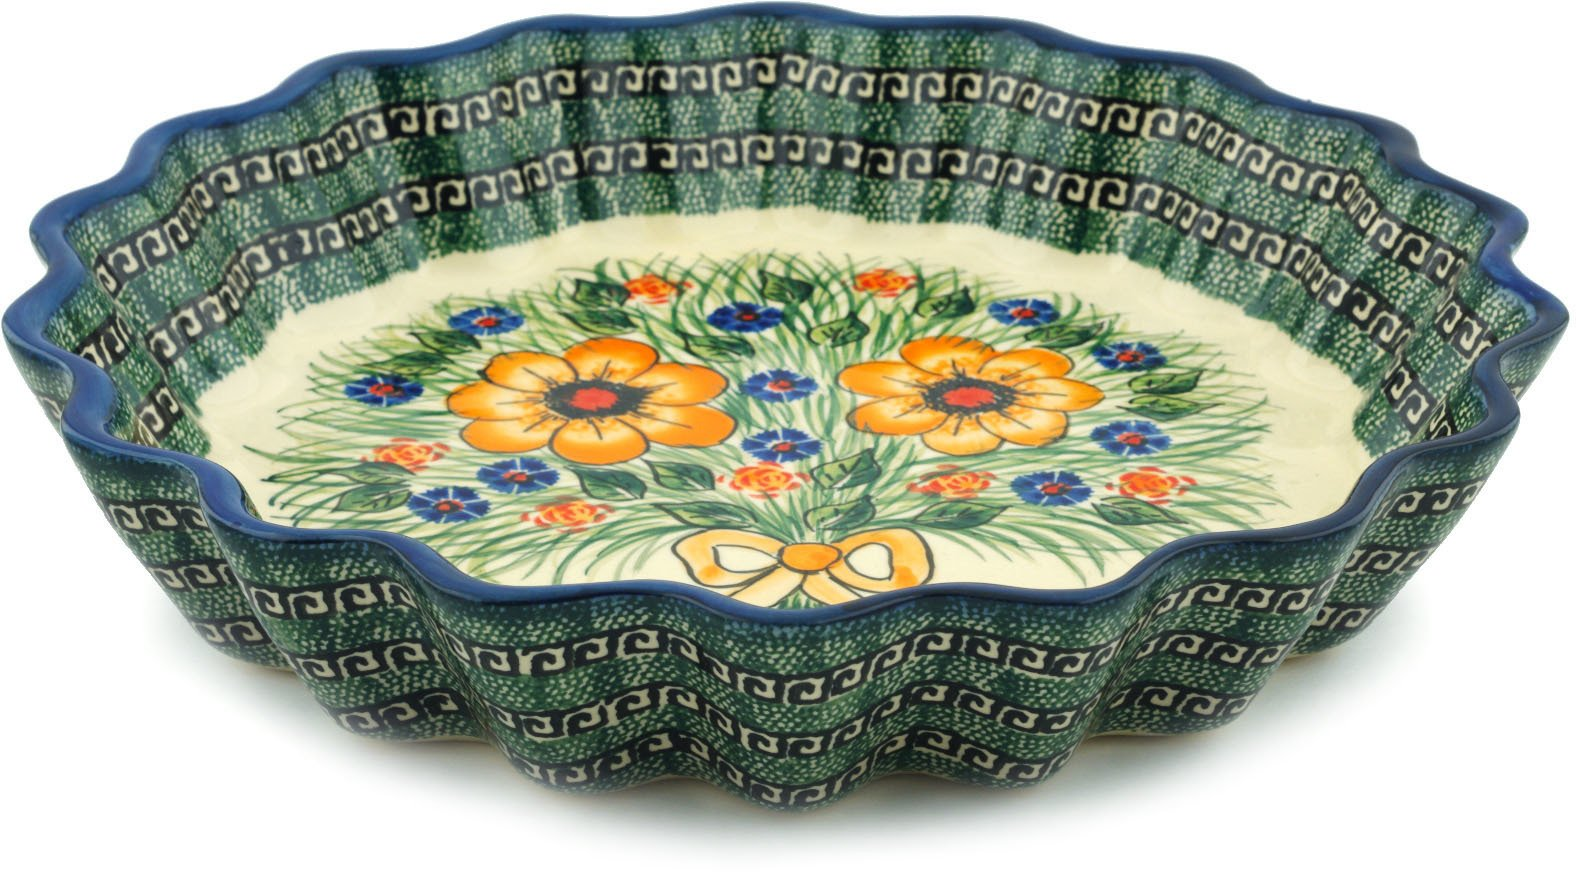 Polish Pottery Fluted Pie Dish 12-inch (Yellow Flower Theme) Signature UNIKAT